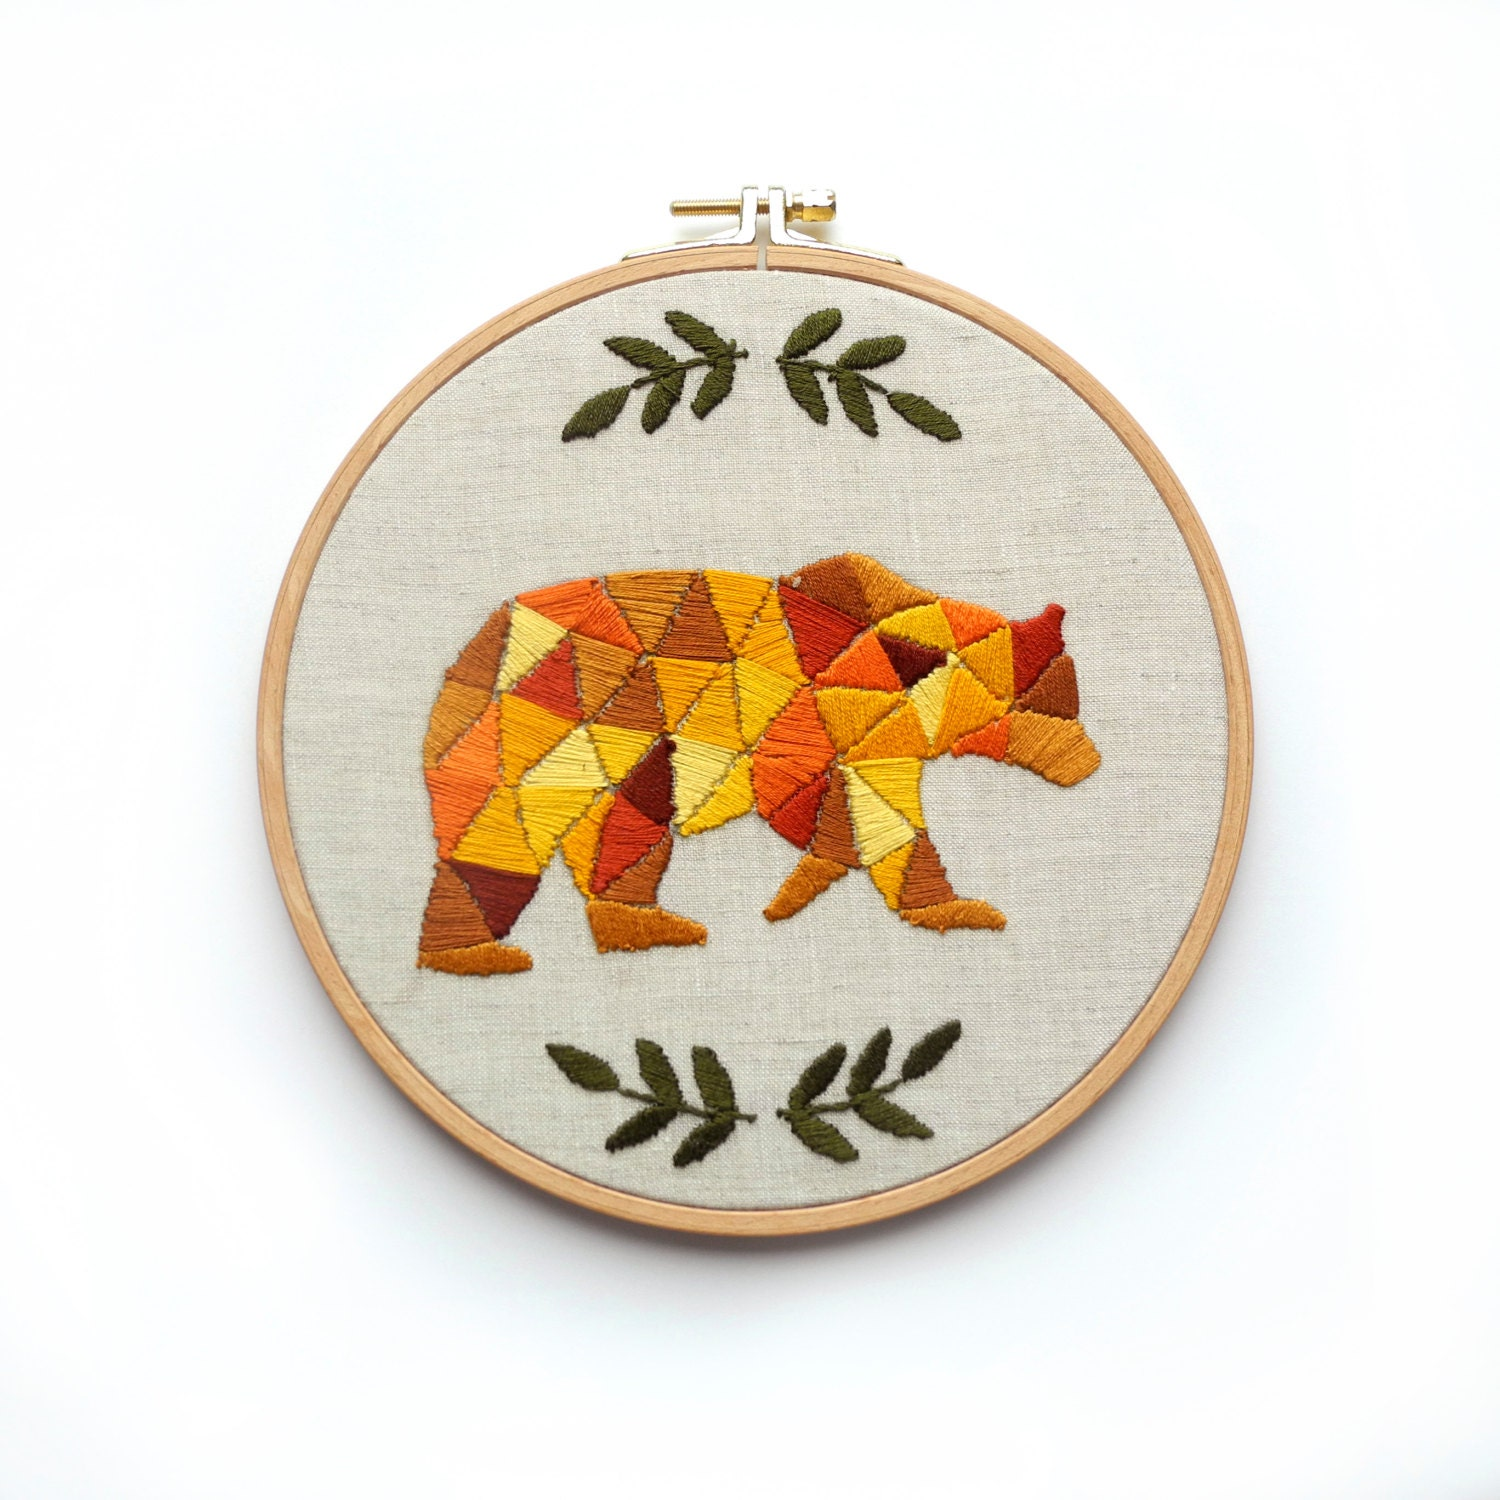 Bear embroidery hoop art hand embroidered gift autumn home